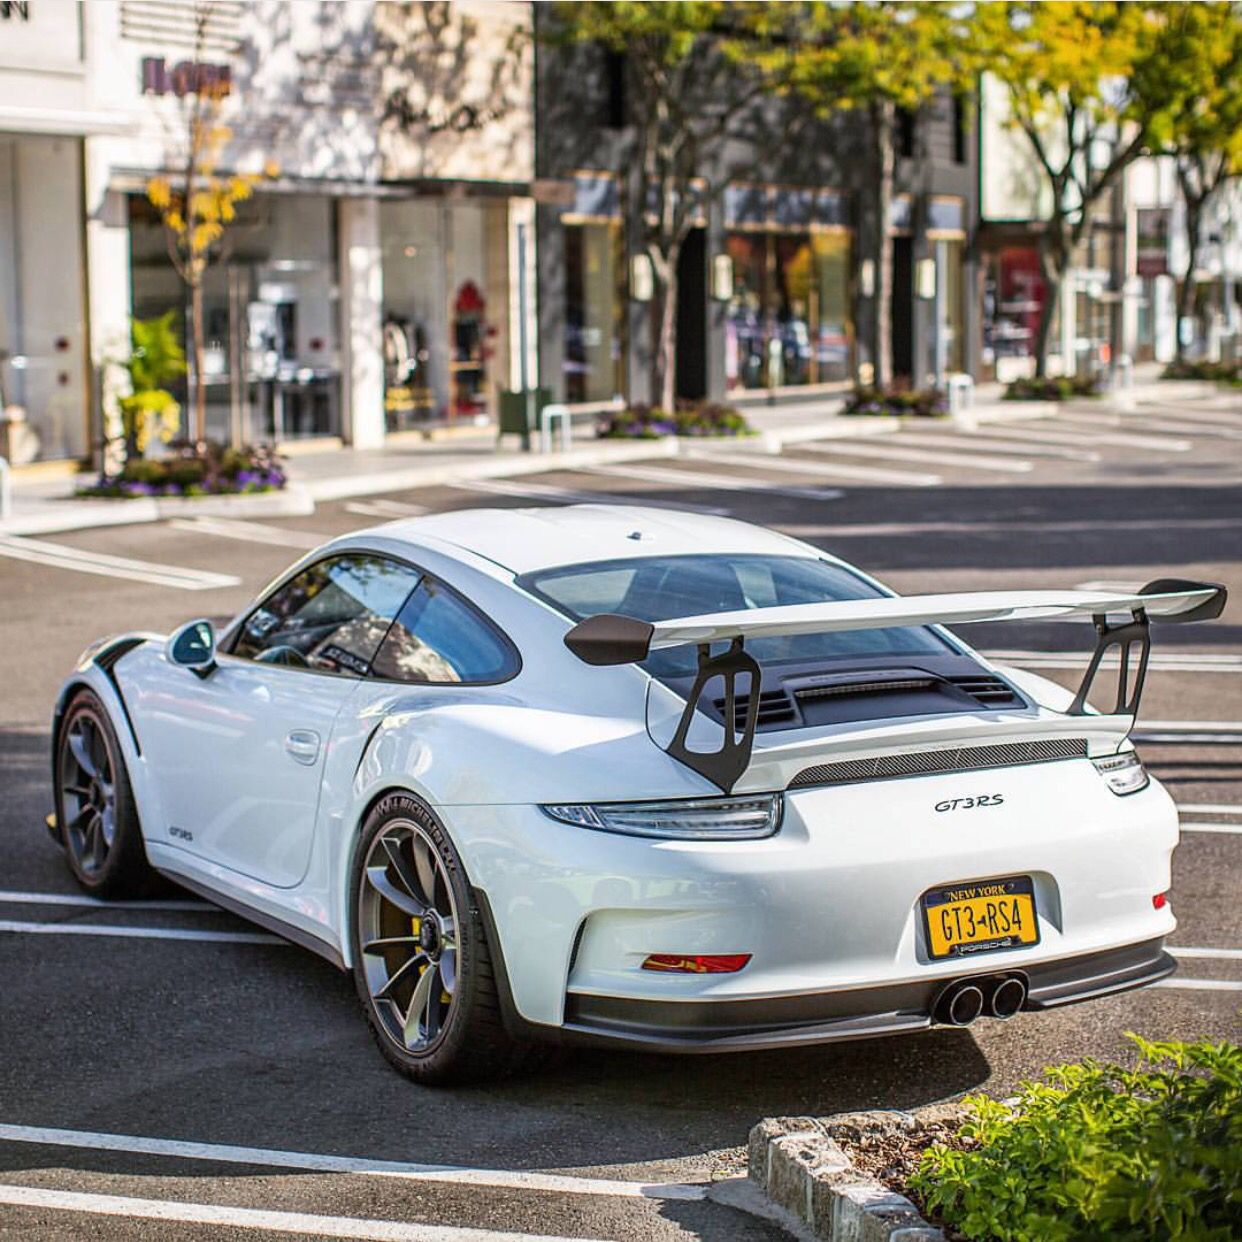 Porsche 991 Gt3 Rs Painted In White Photo Taken By Farisfetyani On Instagram Philkarl On Instagram Is The Owner In 2020 Porsche 991 Gt3 Porsche 991 Porsche Cars